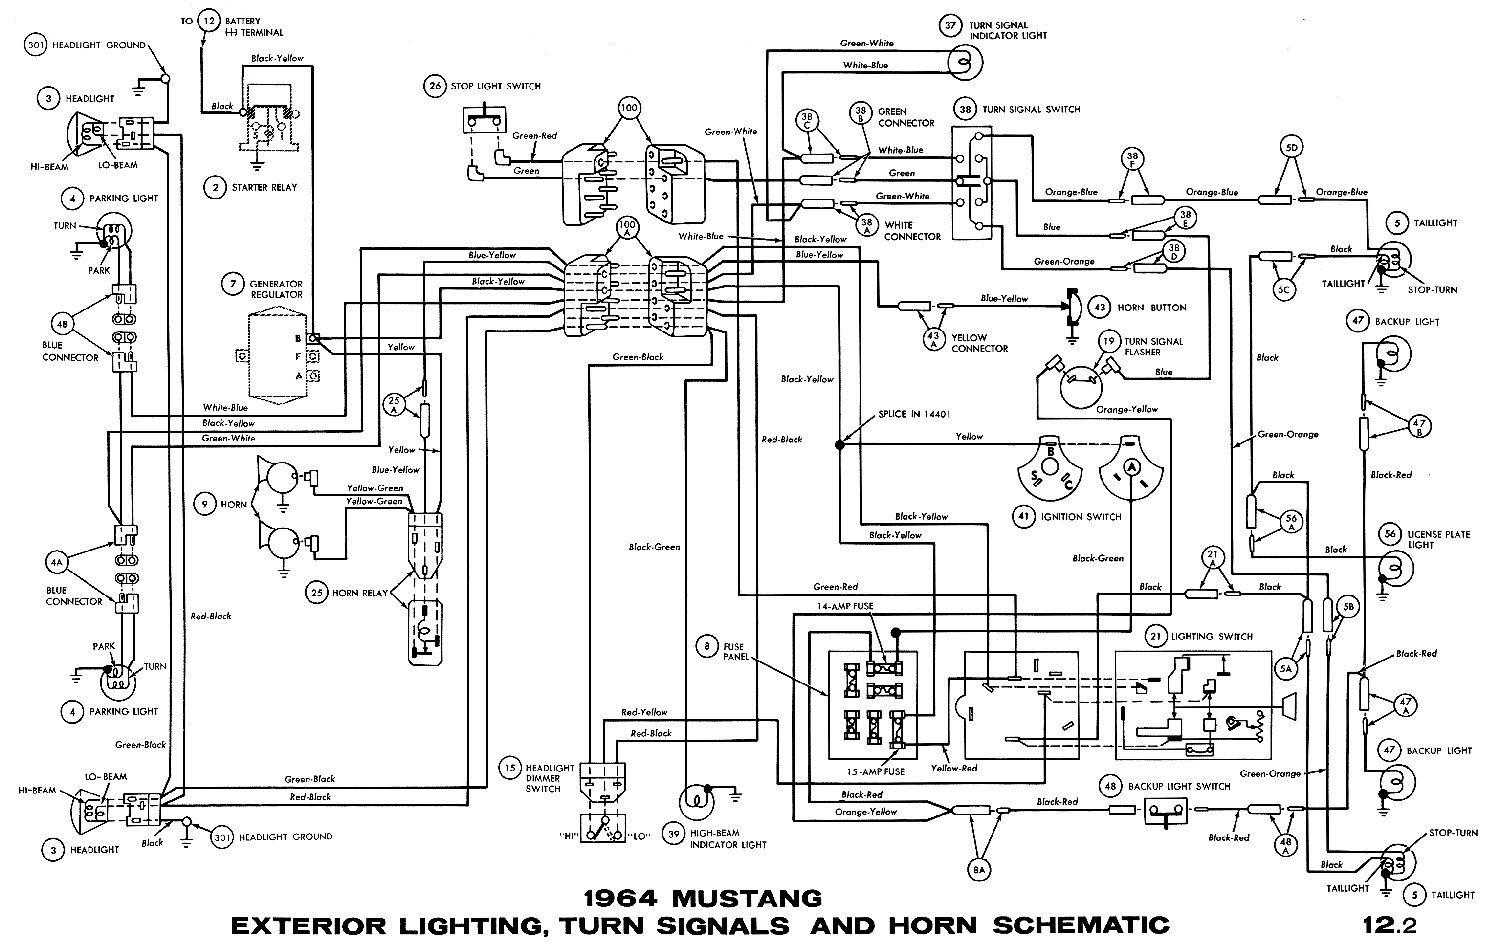 1964 mustang wiring diagrams average joe restoration rh averagejoerestoration Wiring Schematics for Cars Wiring Schematics